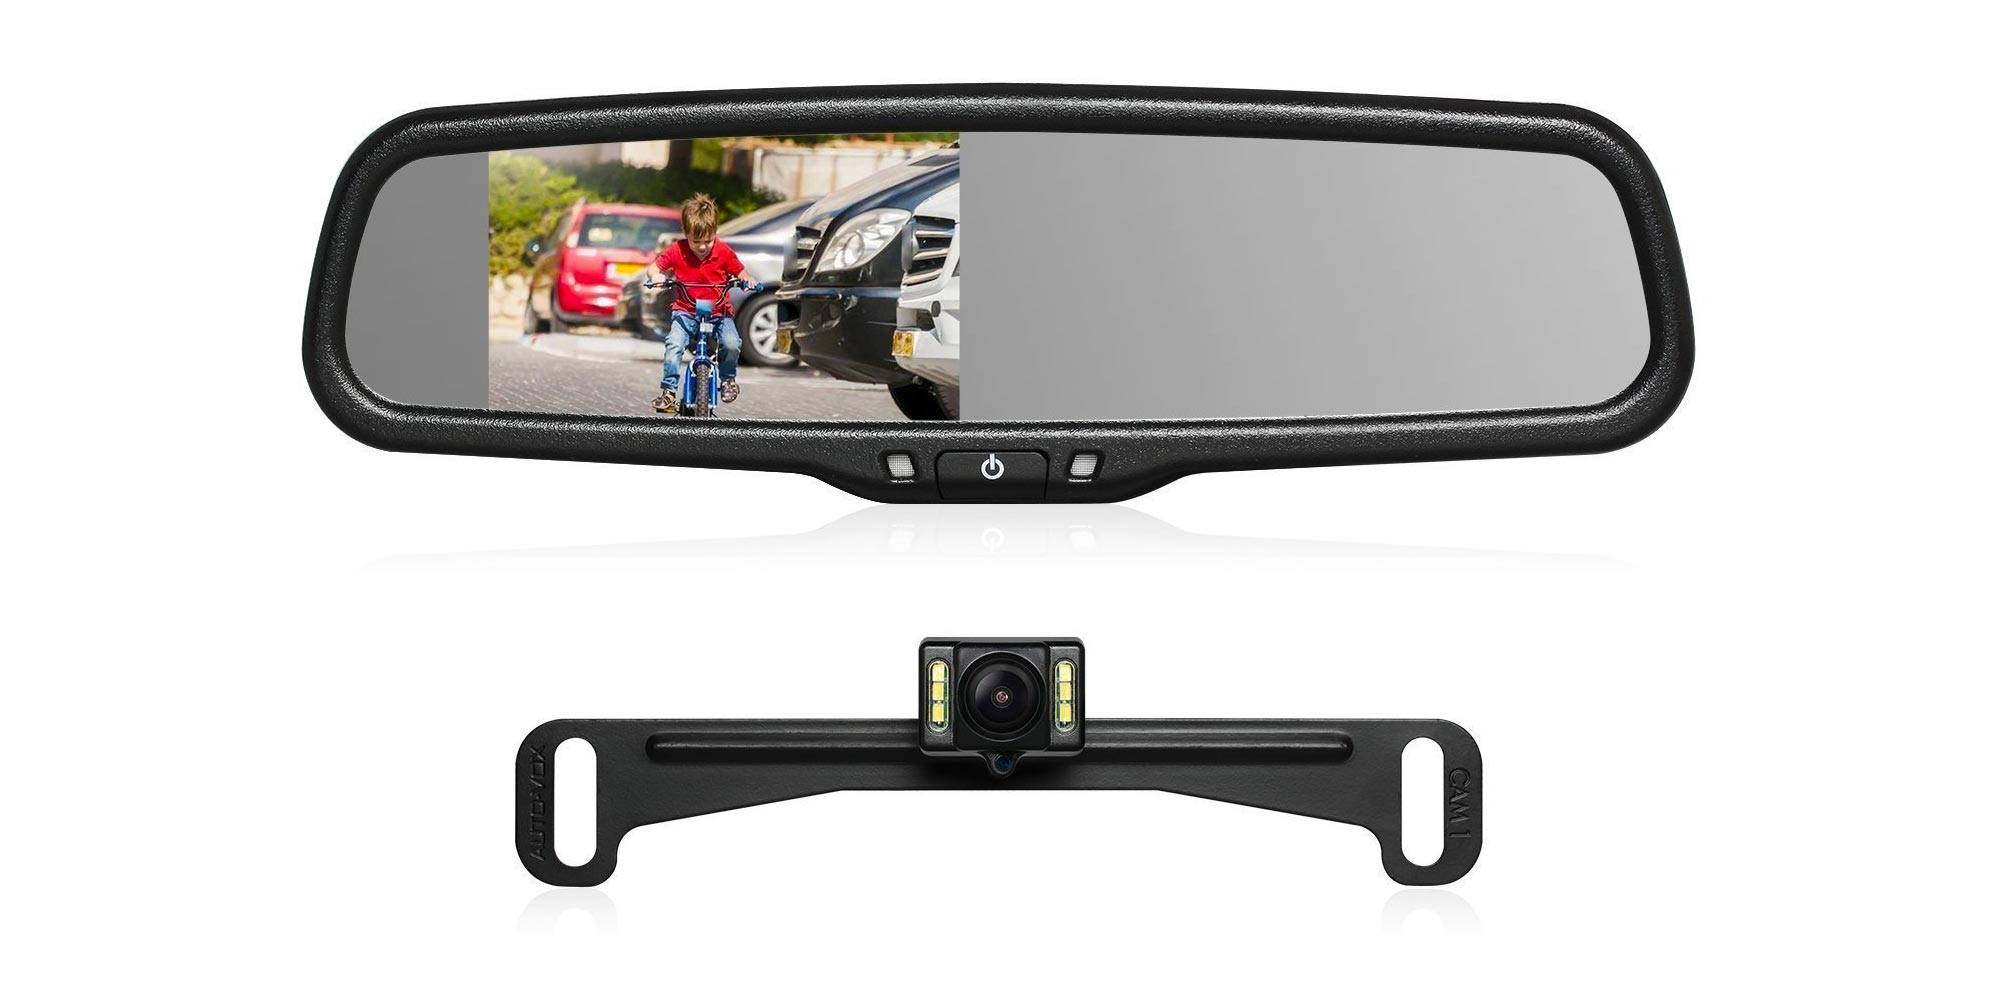 Put a display in your rearview mirror w/ this backup camera kit for $98 shipped (Reg. $140)